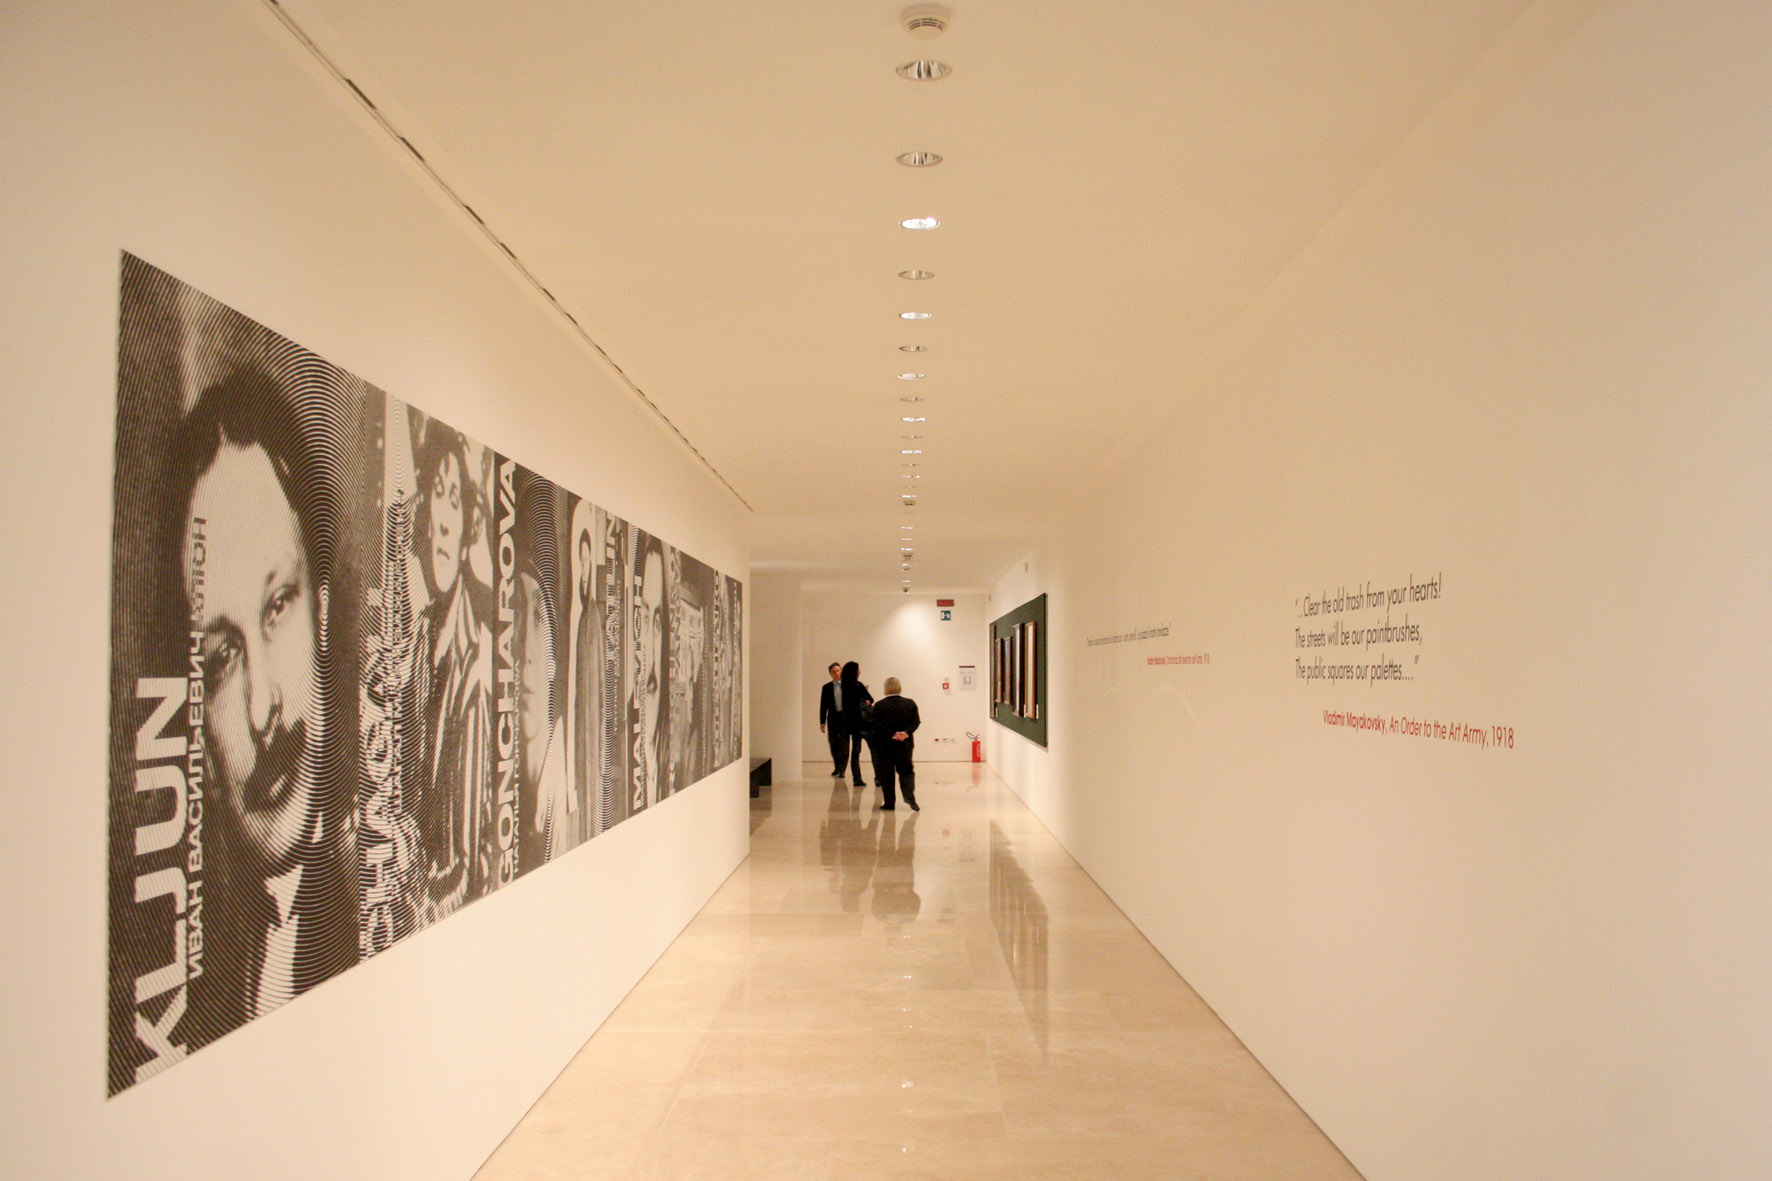 Nuovo allestimento Museo dell'Ara Pacis – Mostra Avanguardie russe (foto Luca Labanca) 9